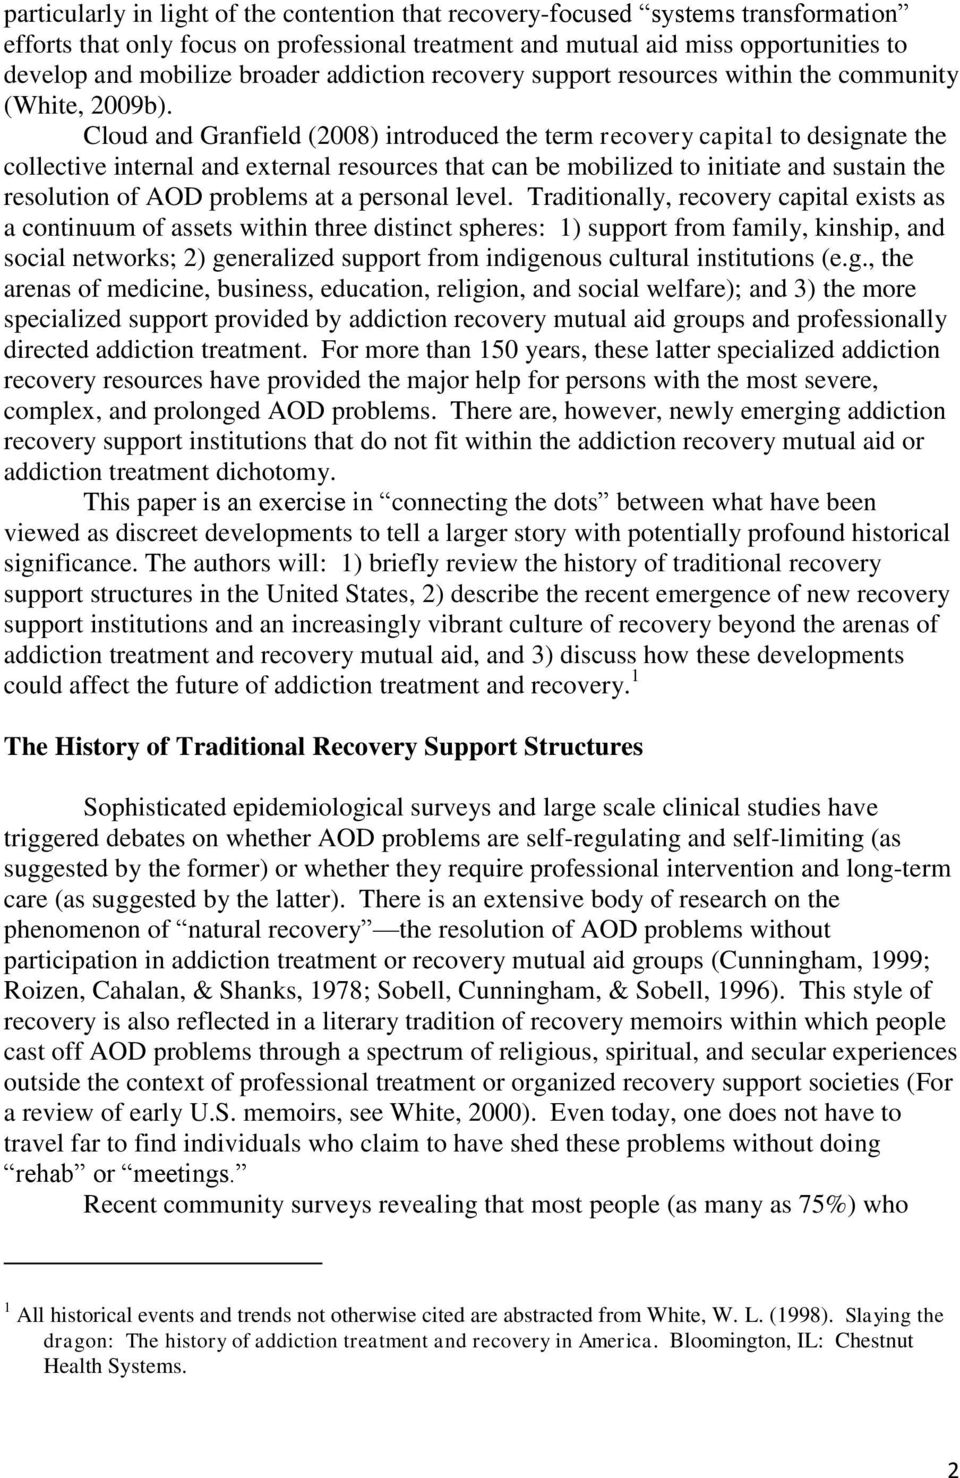 Cloud and Granfield (2008) introduced the term recovery capital to designate the collective internal and external resources that can be mobilized to initiate and sustain the resolution of AOD